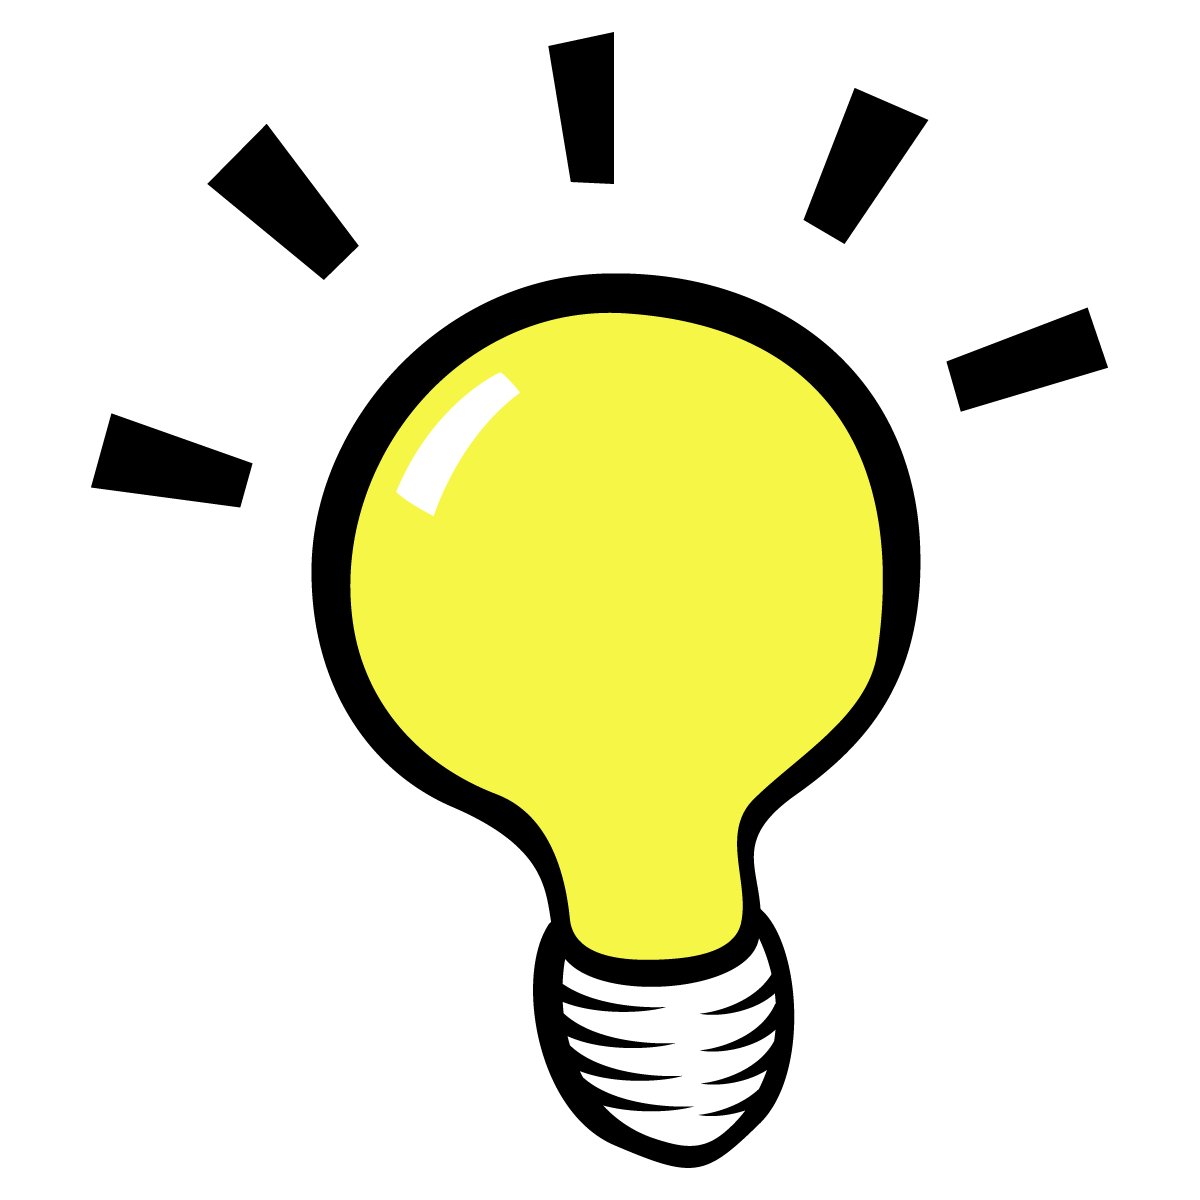 Light Bulb Thinking Clipart - Clipart Kid